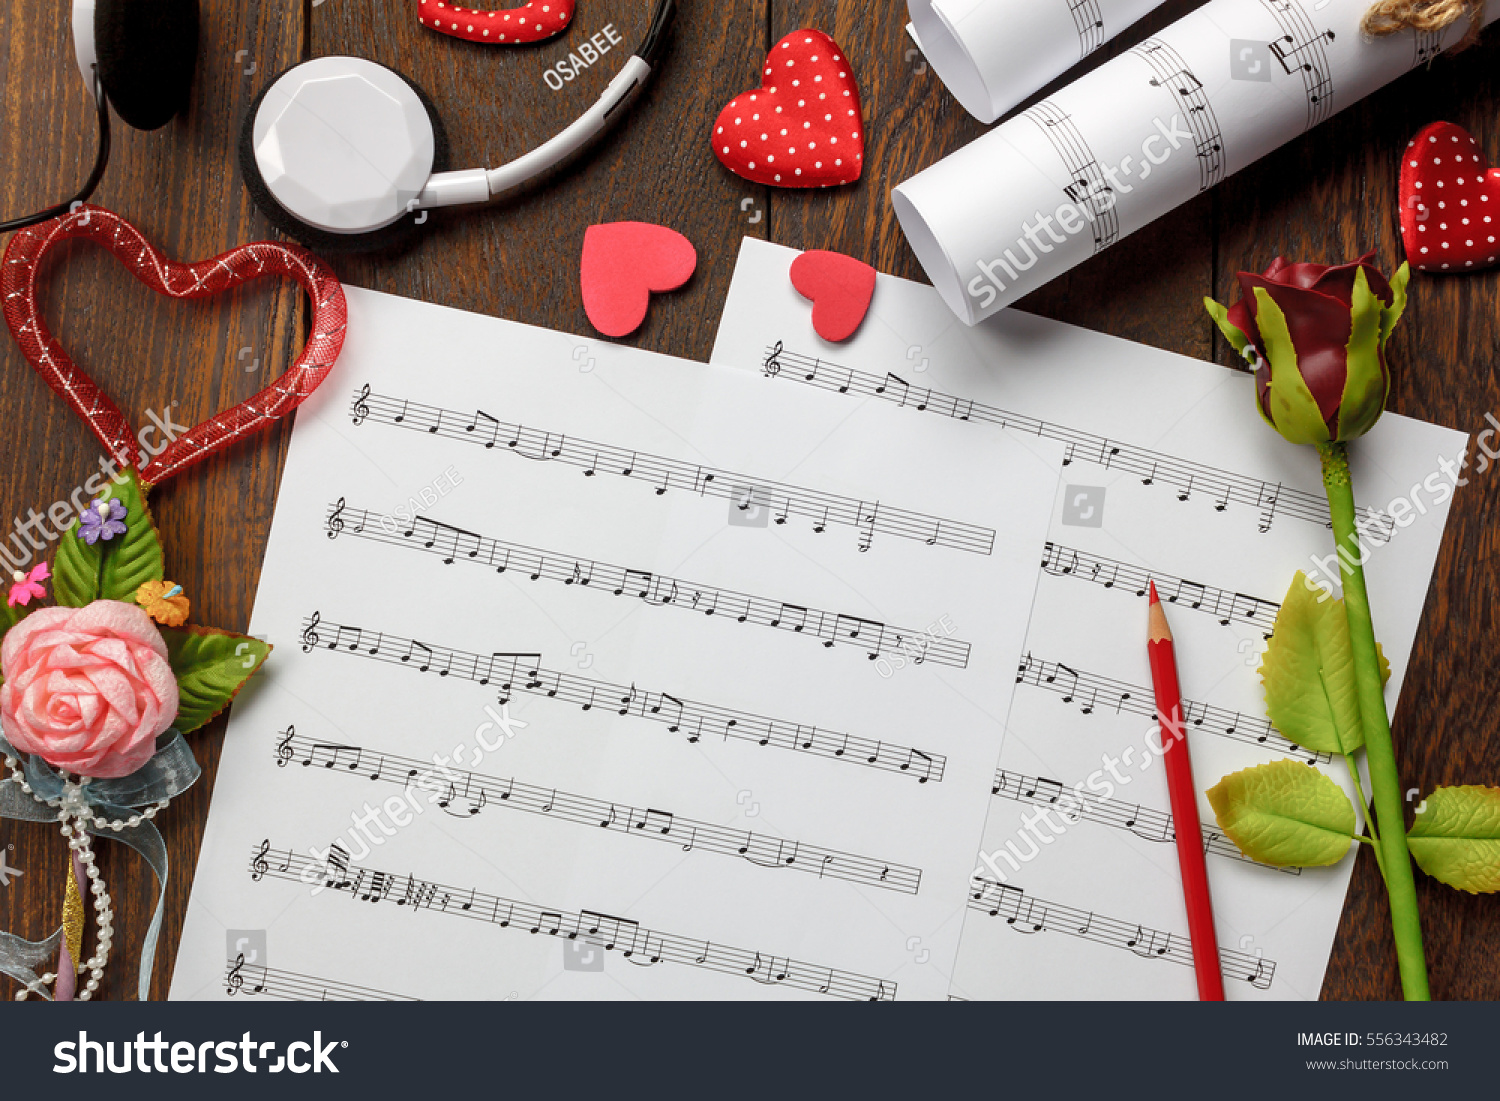 Top View Valentines Day Love Song Stock Photo Download Now